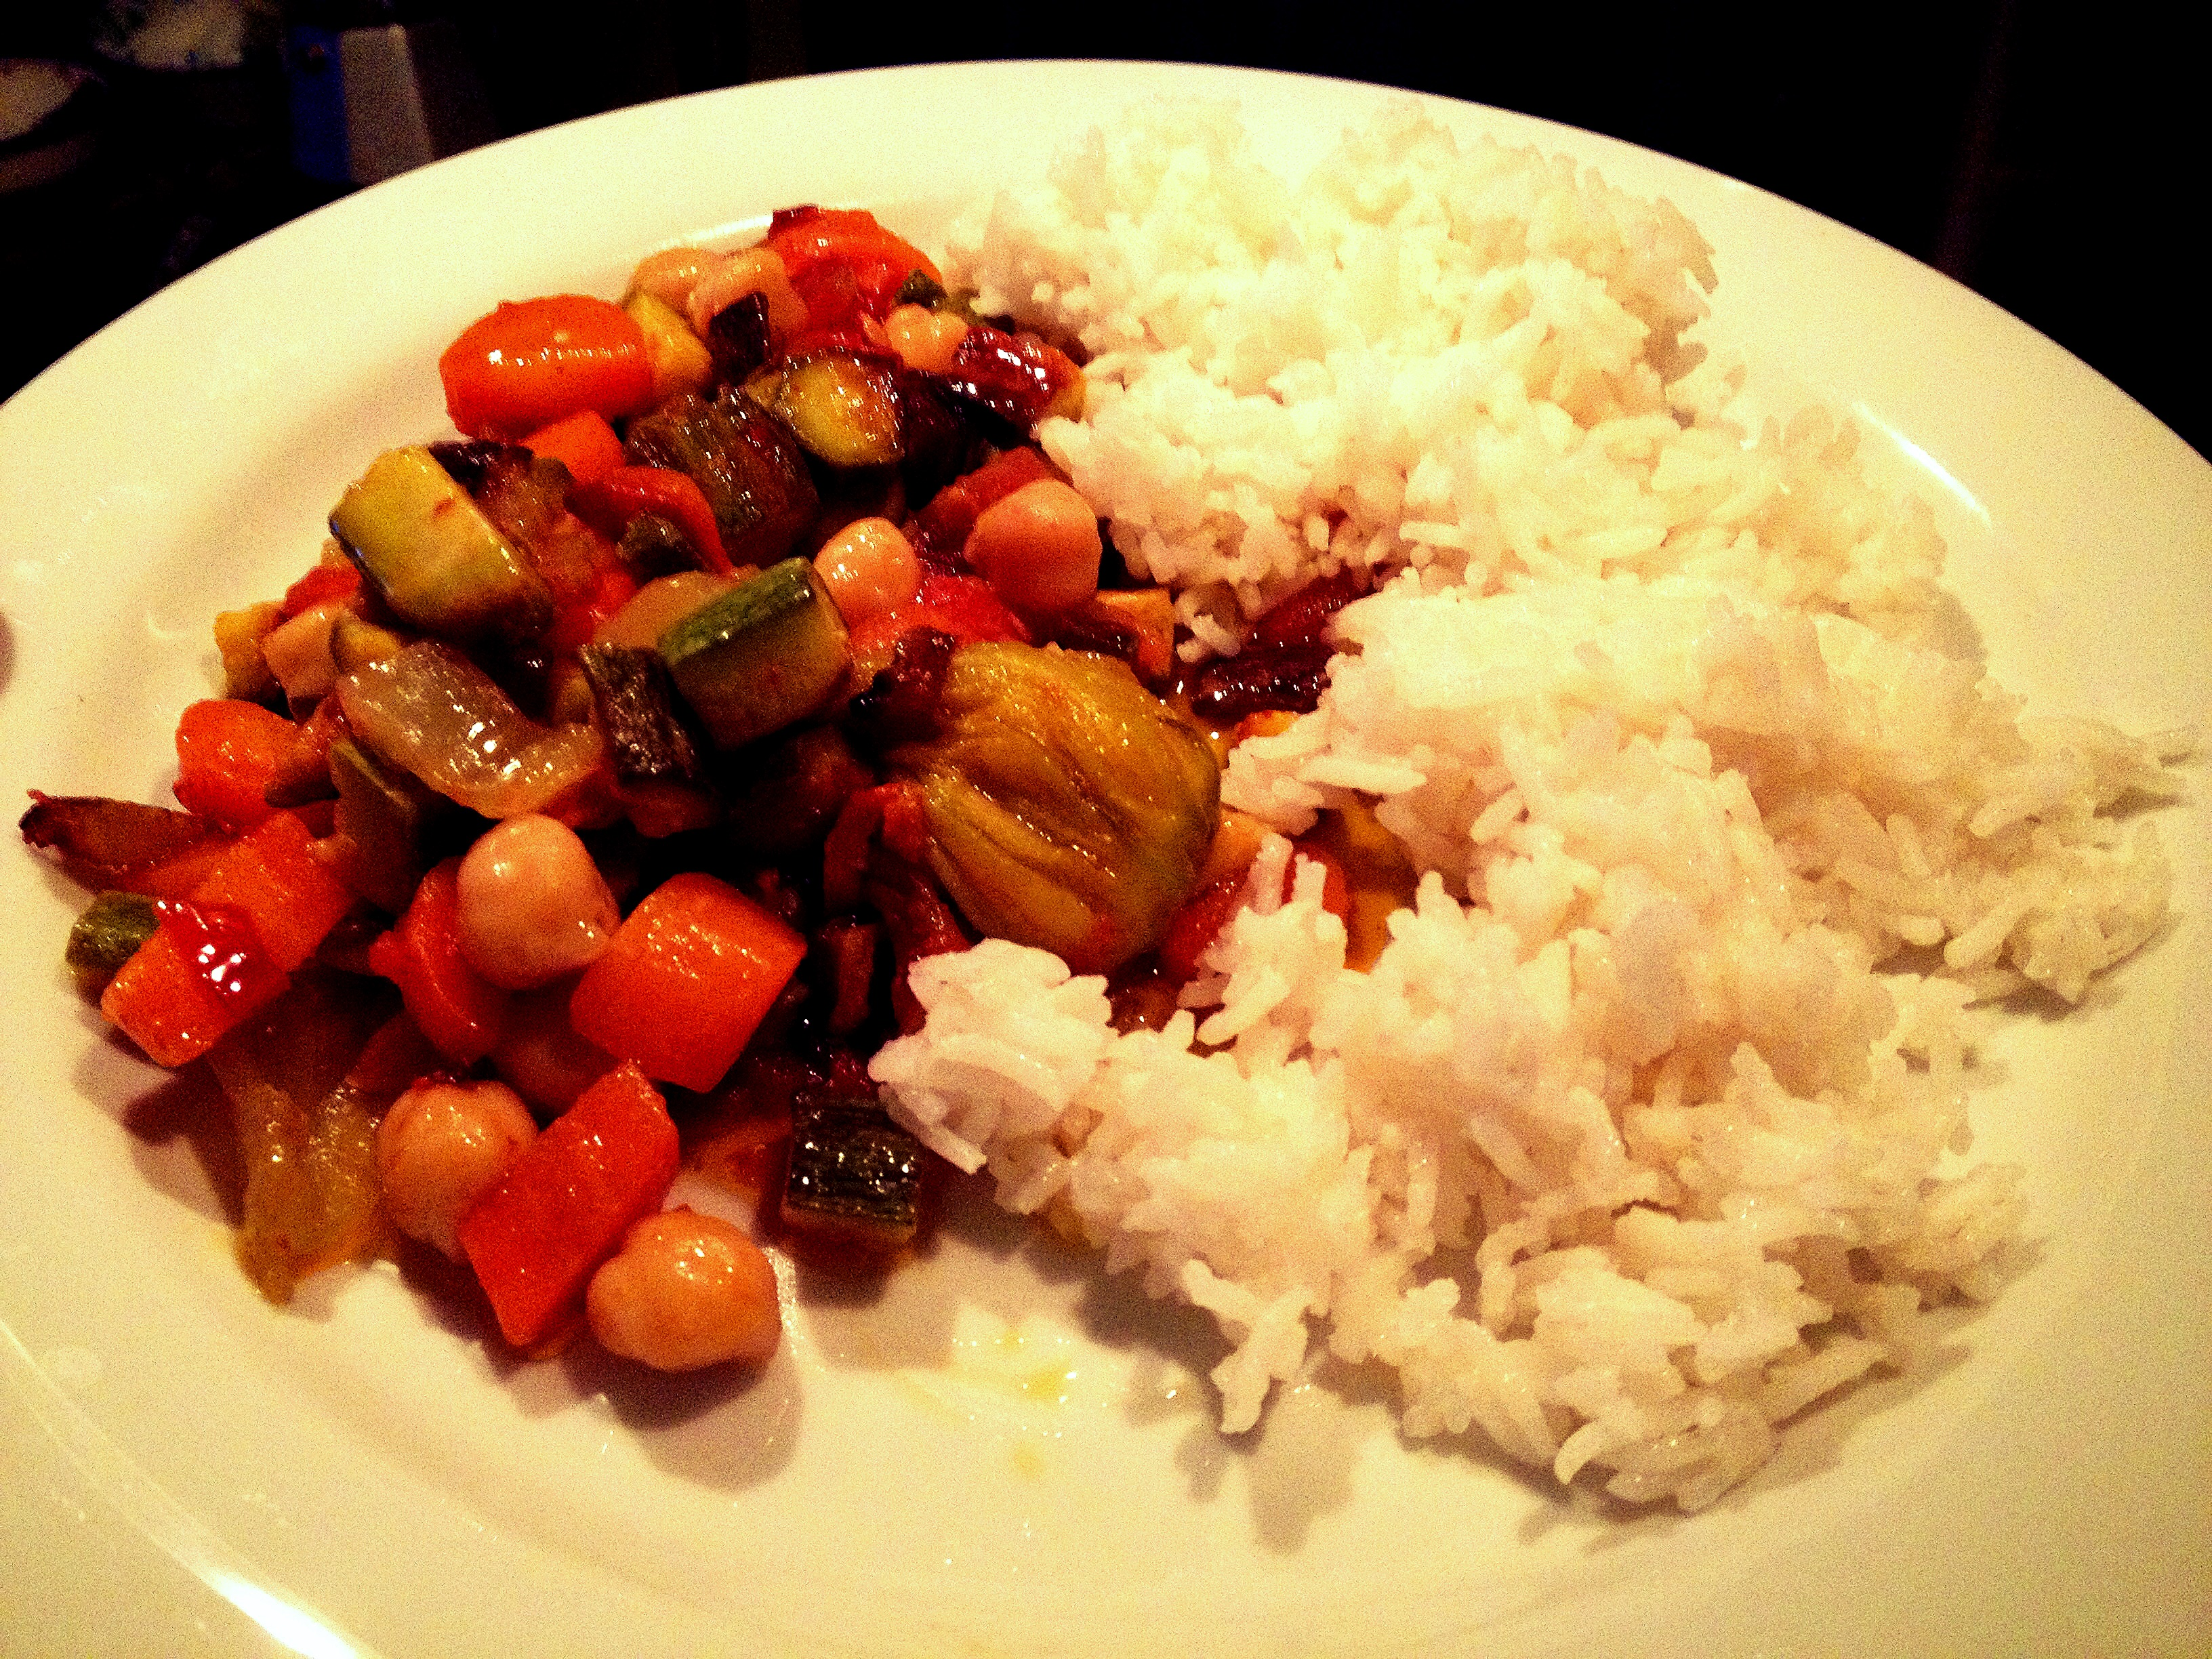 Rice, veggies and chickpeas